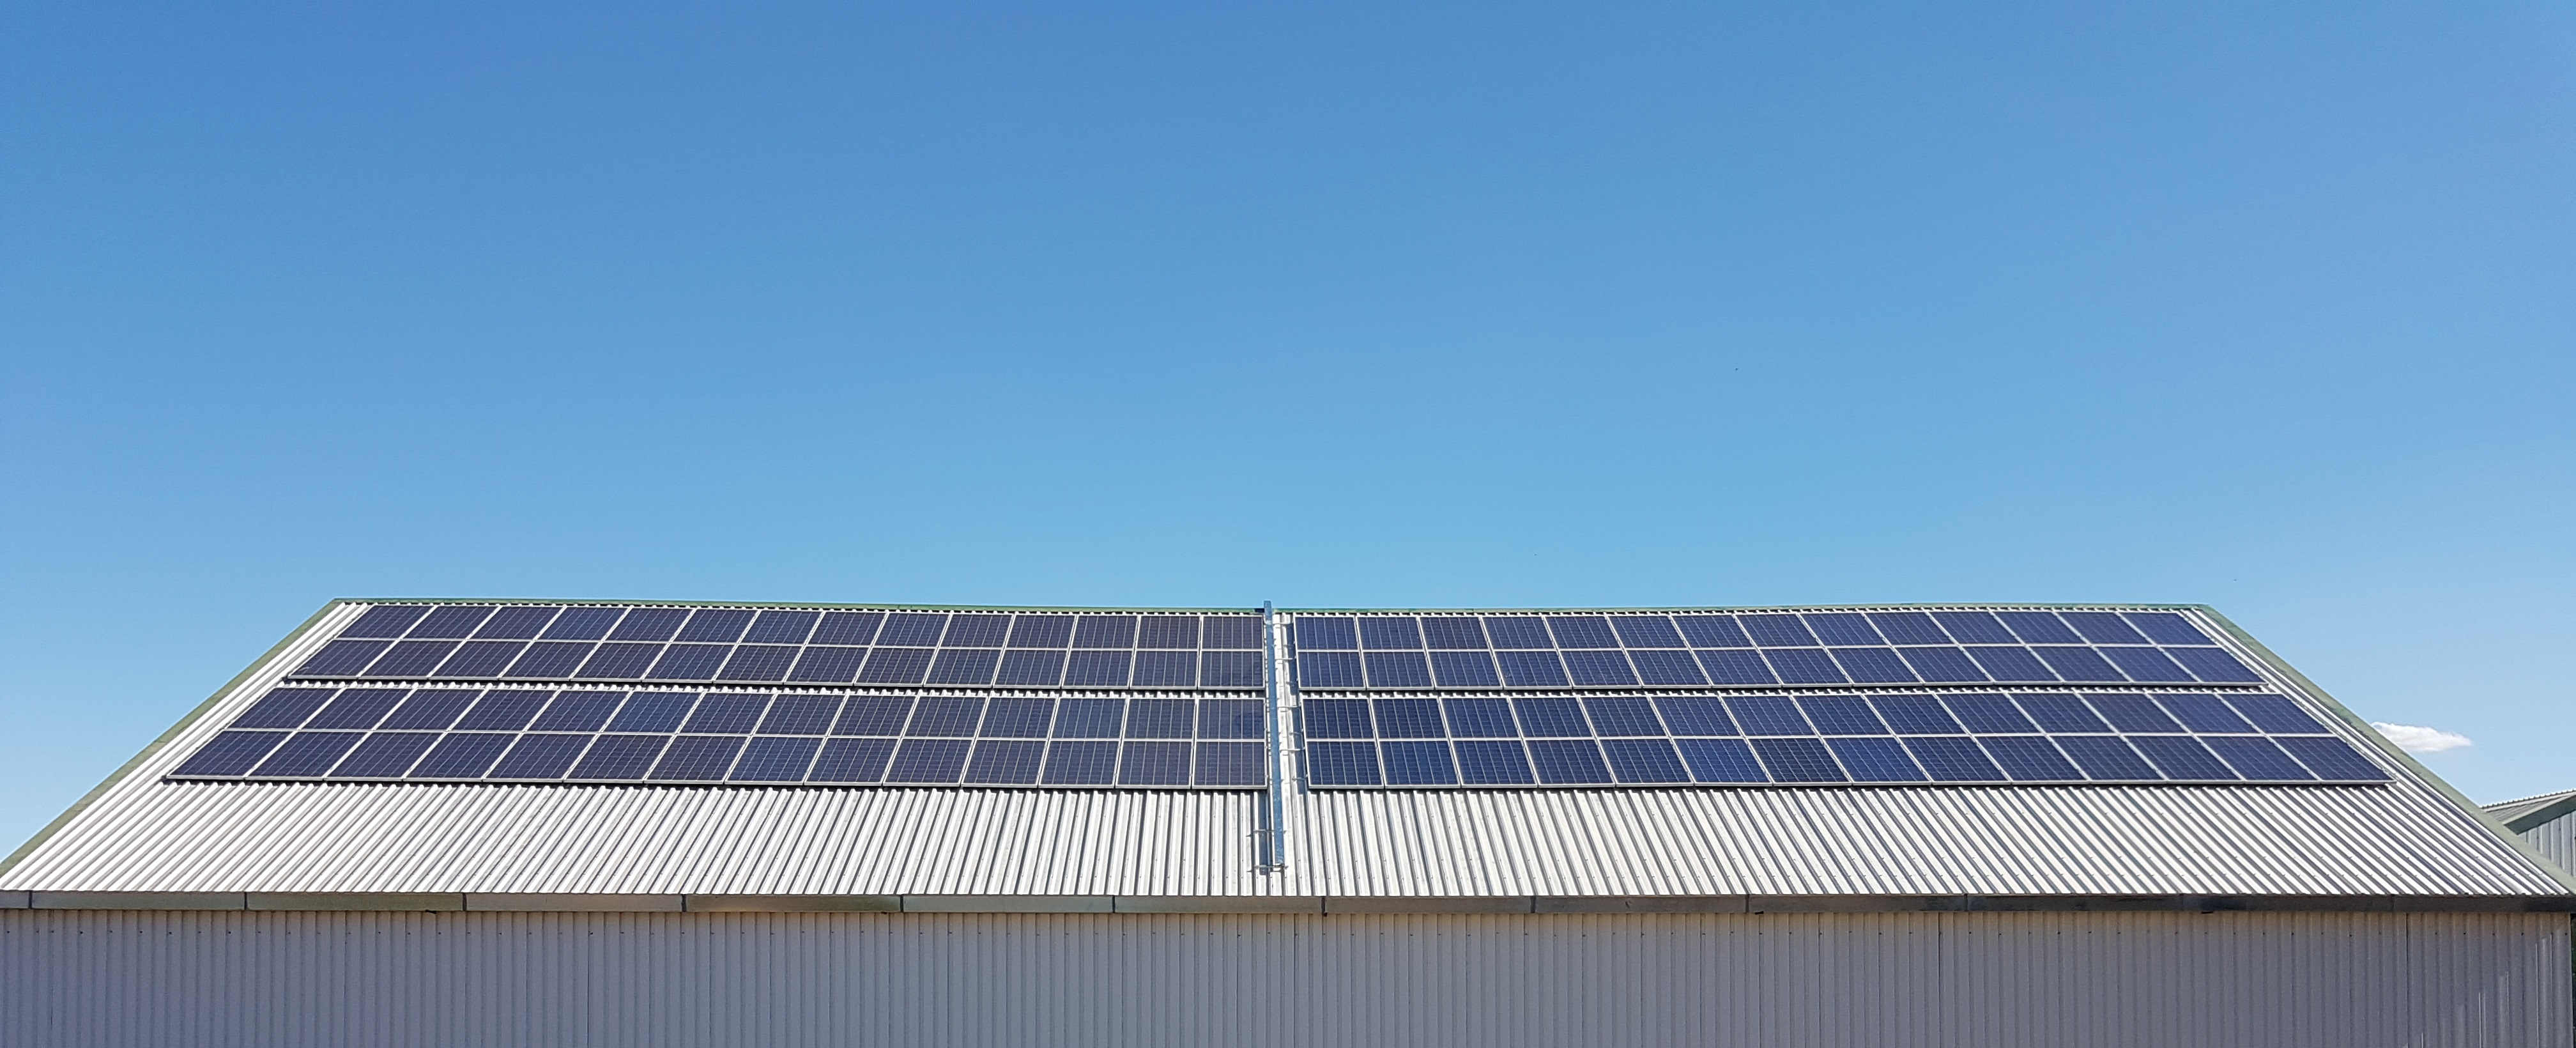 Solar panels for commercial use: Is it beneficial or not?